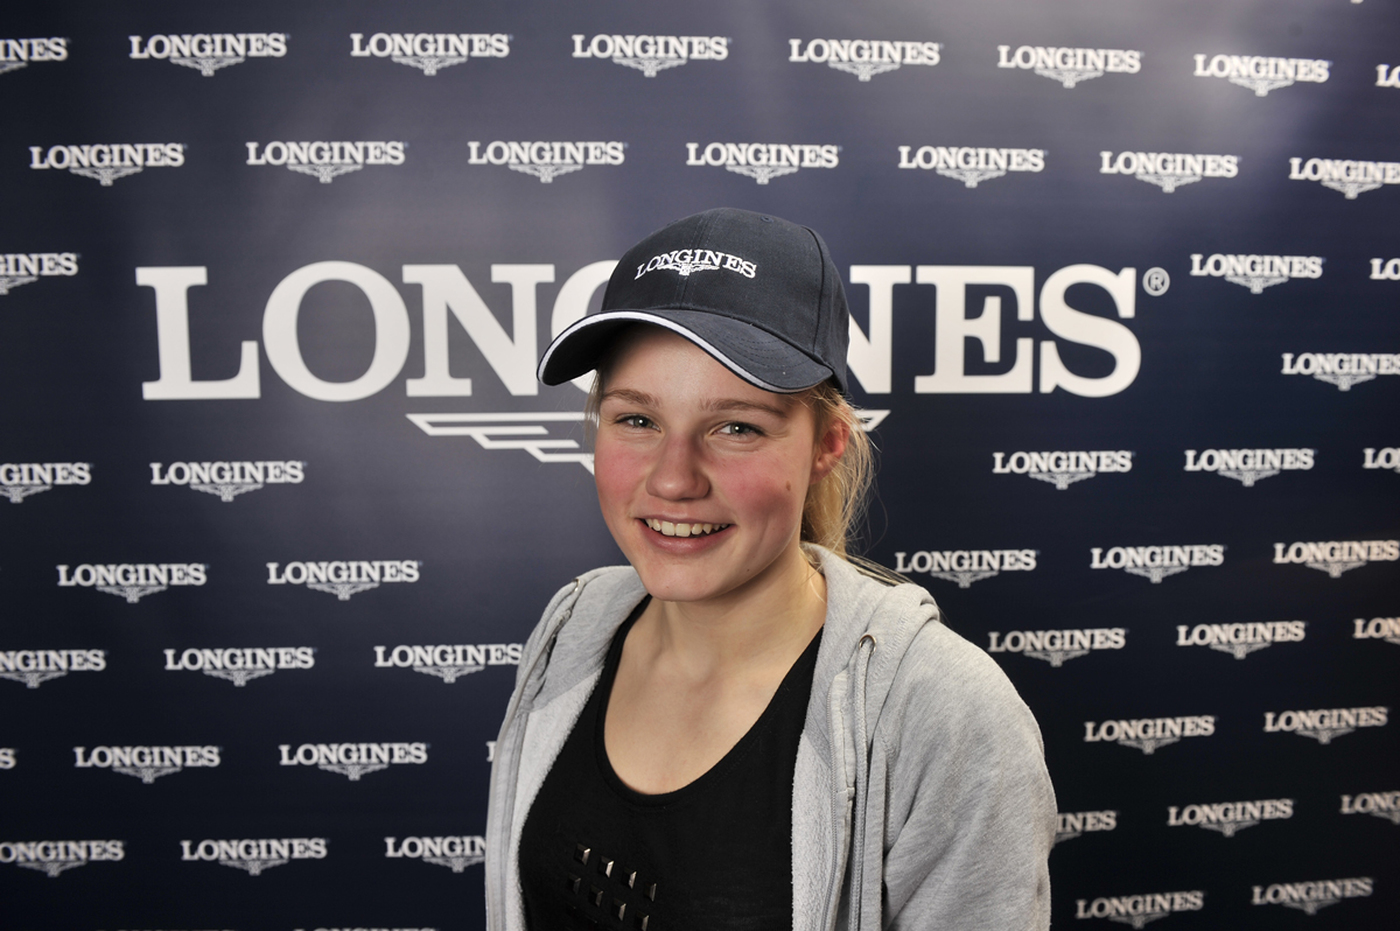 Longines Alpine Skiing Event: Second edition of the Longines Future Ski Champions – A successful 100% female competition in Val d'Isère 18